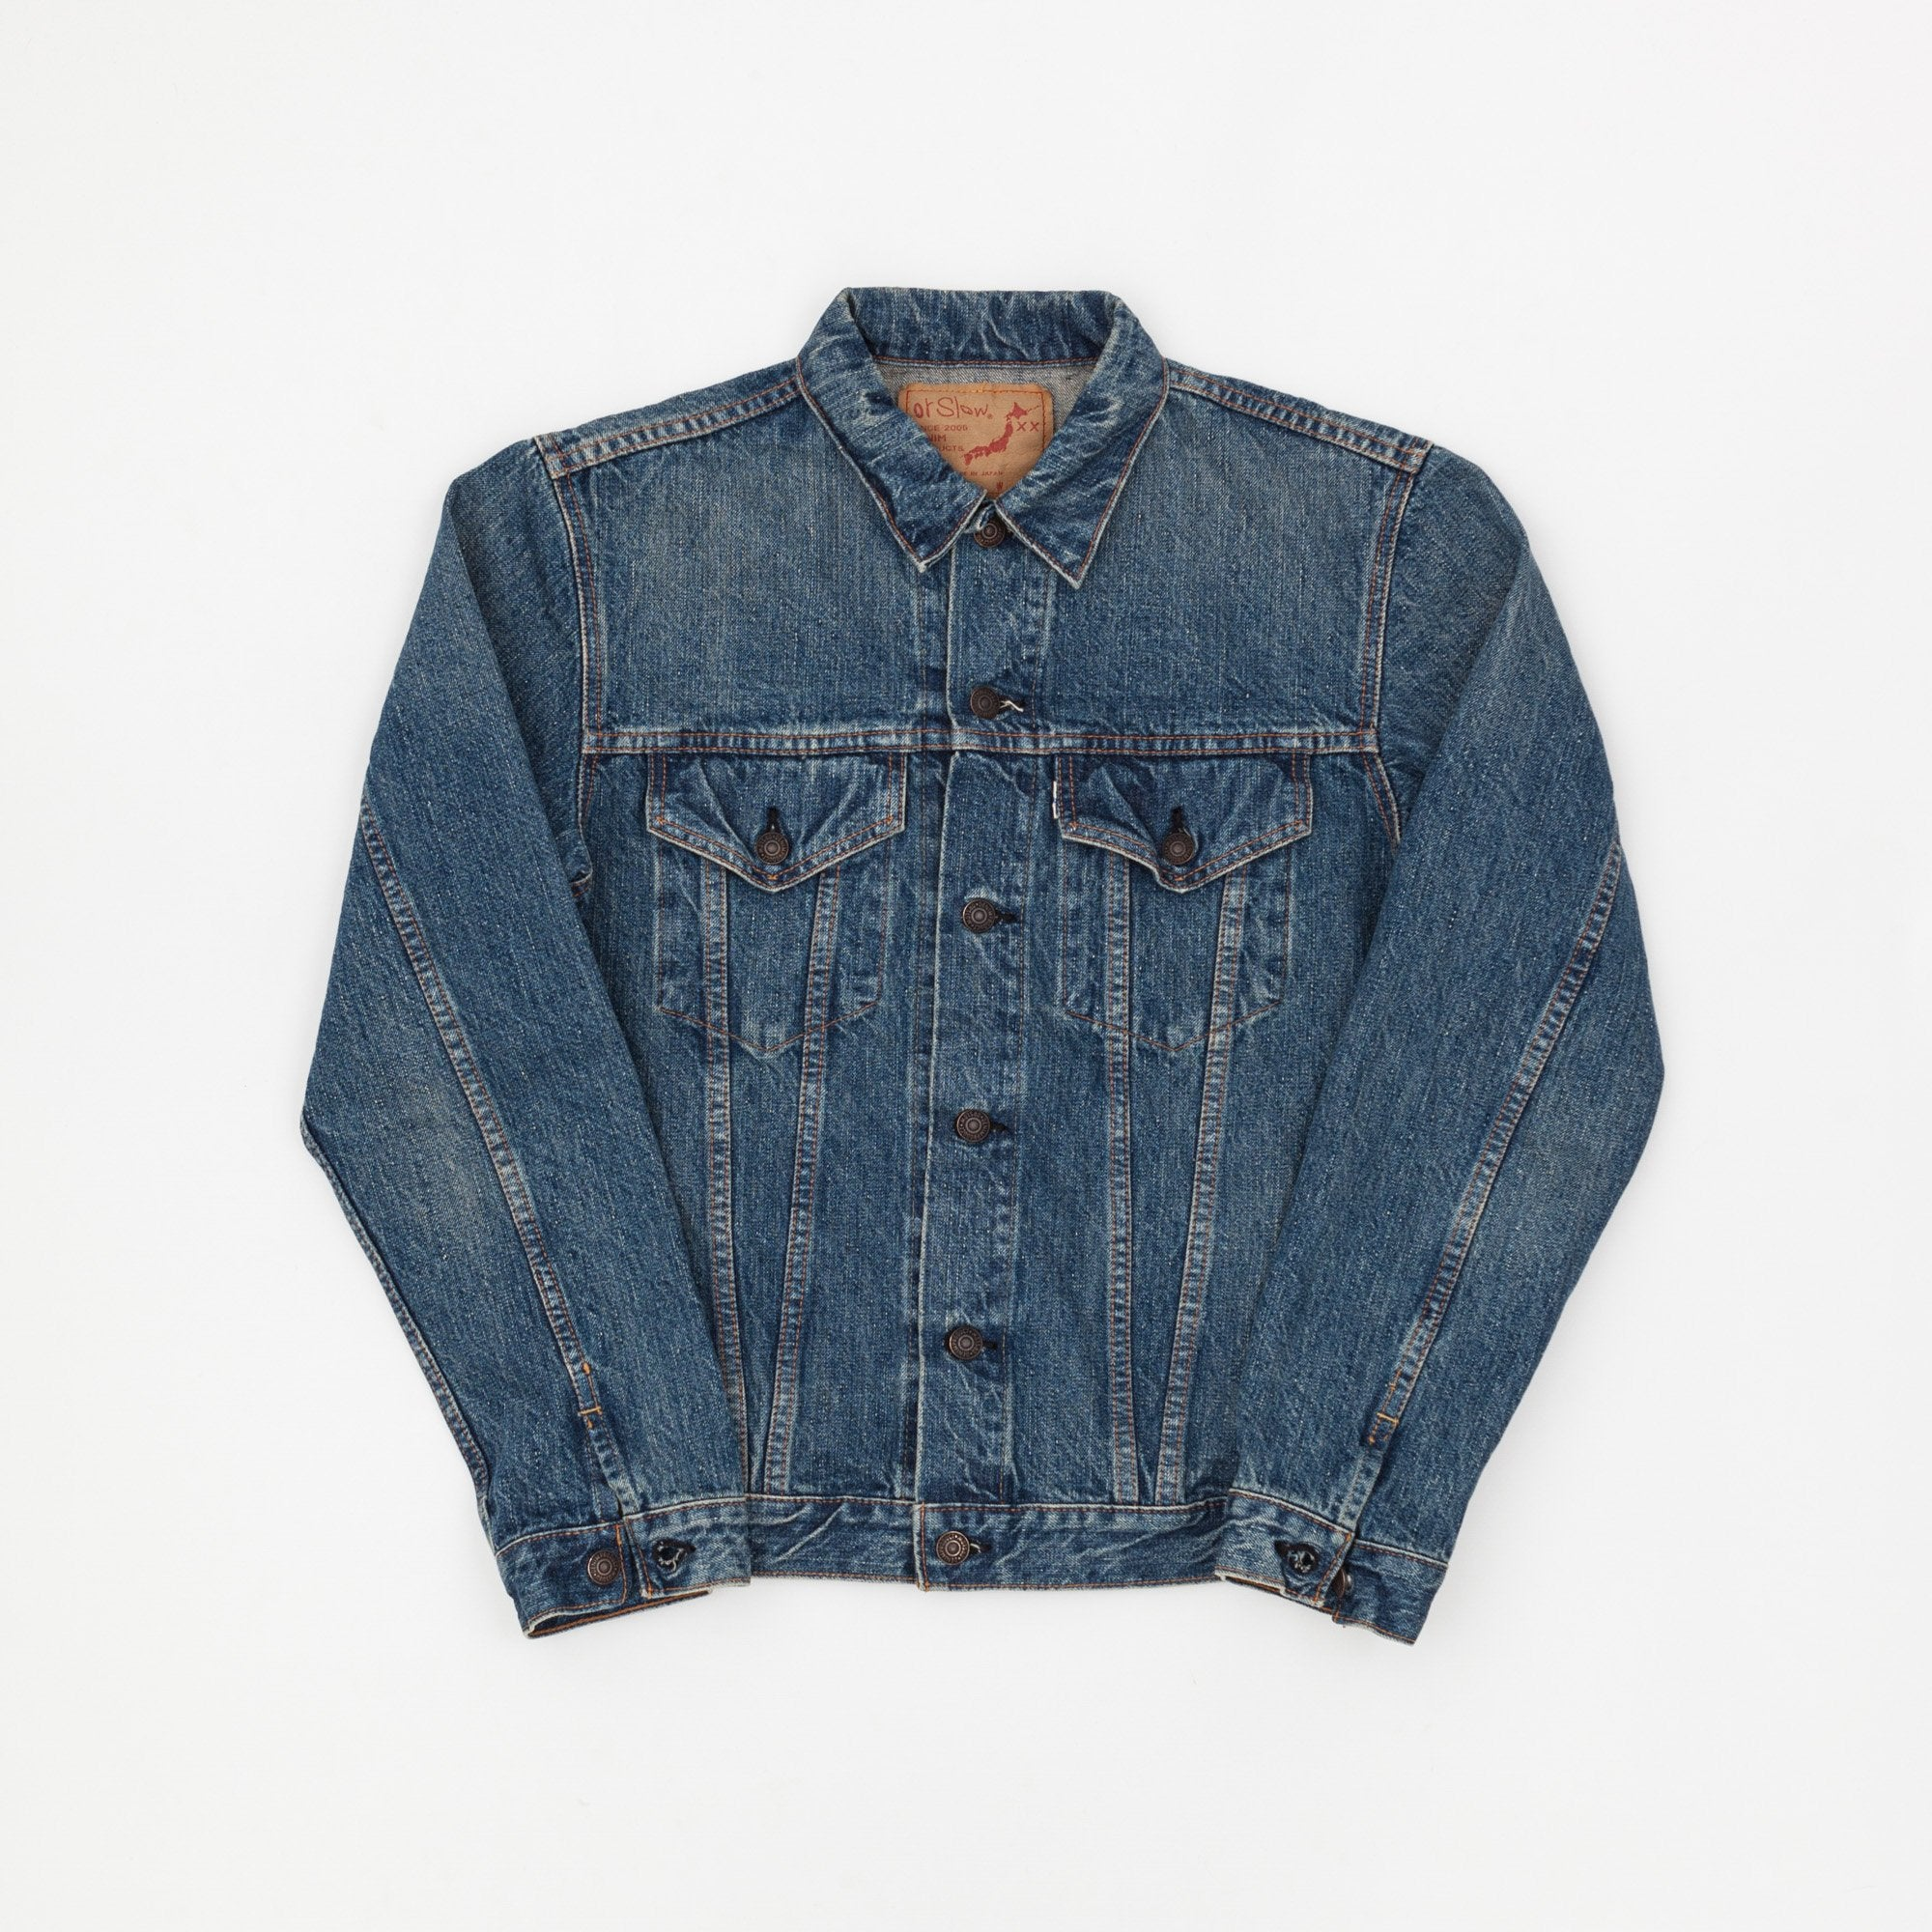 Orslow 1960s Denim Trucker Jacket